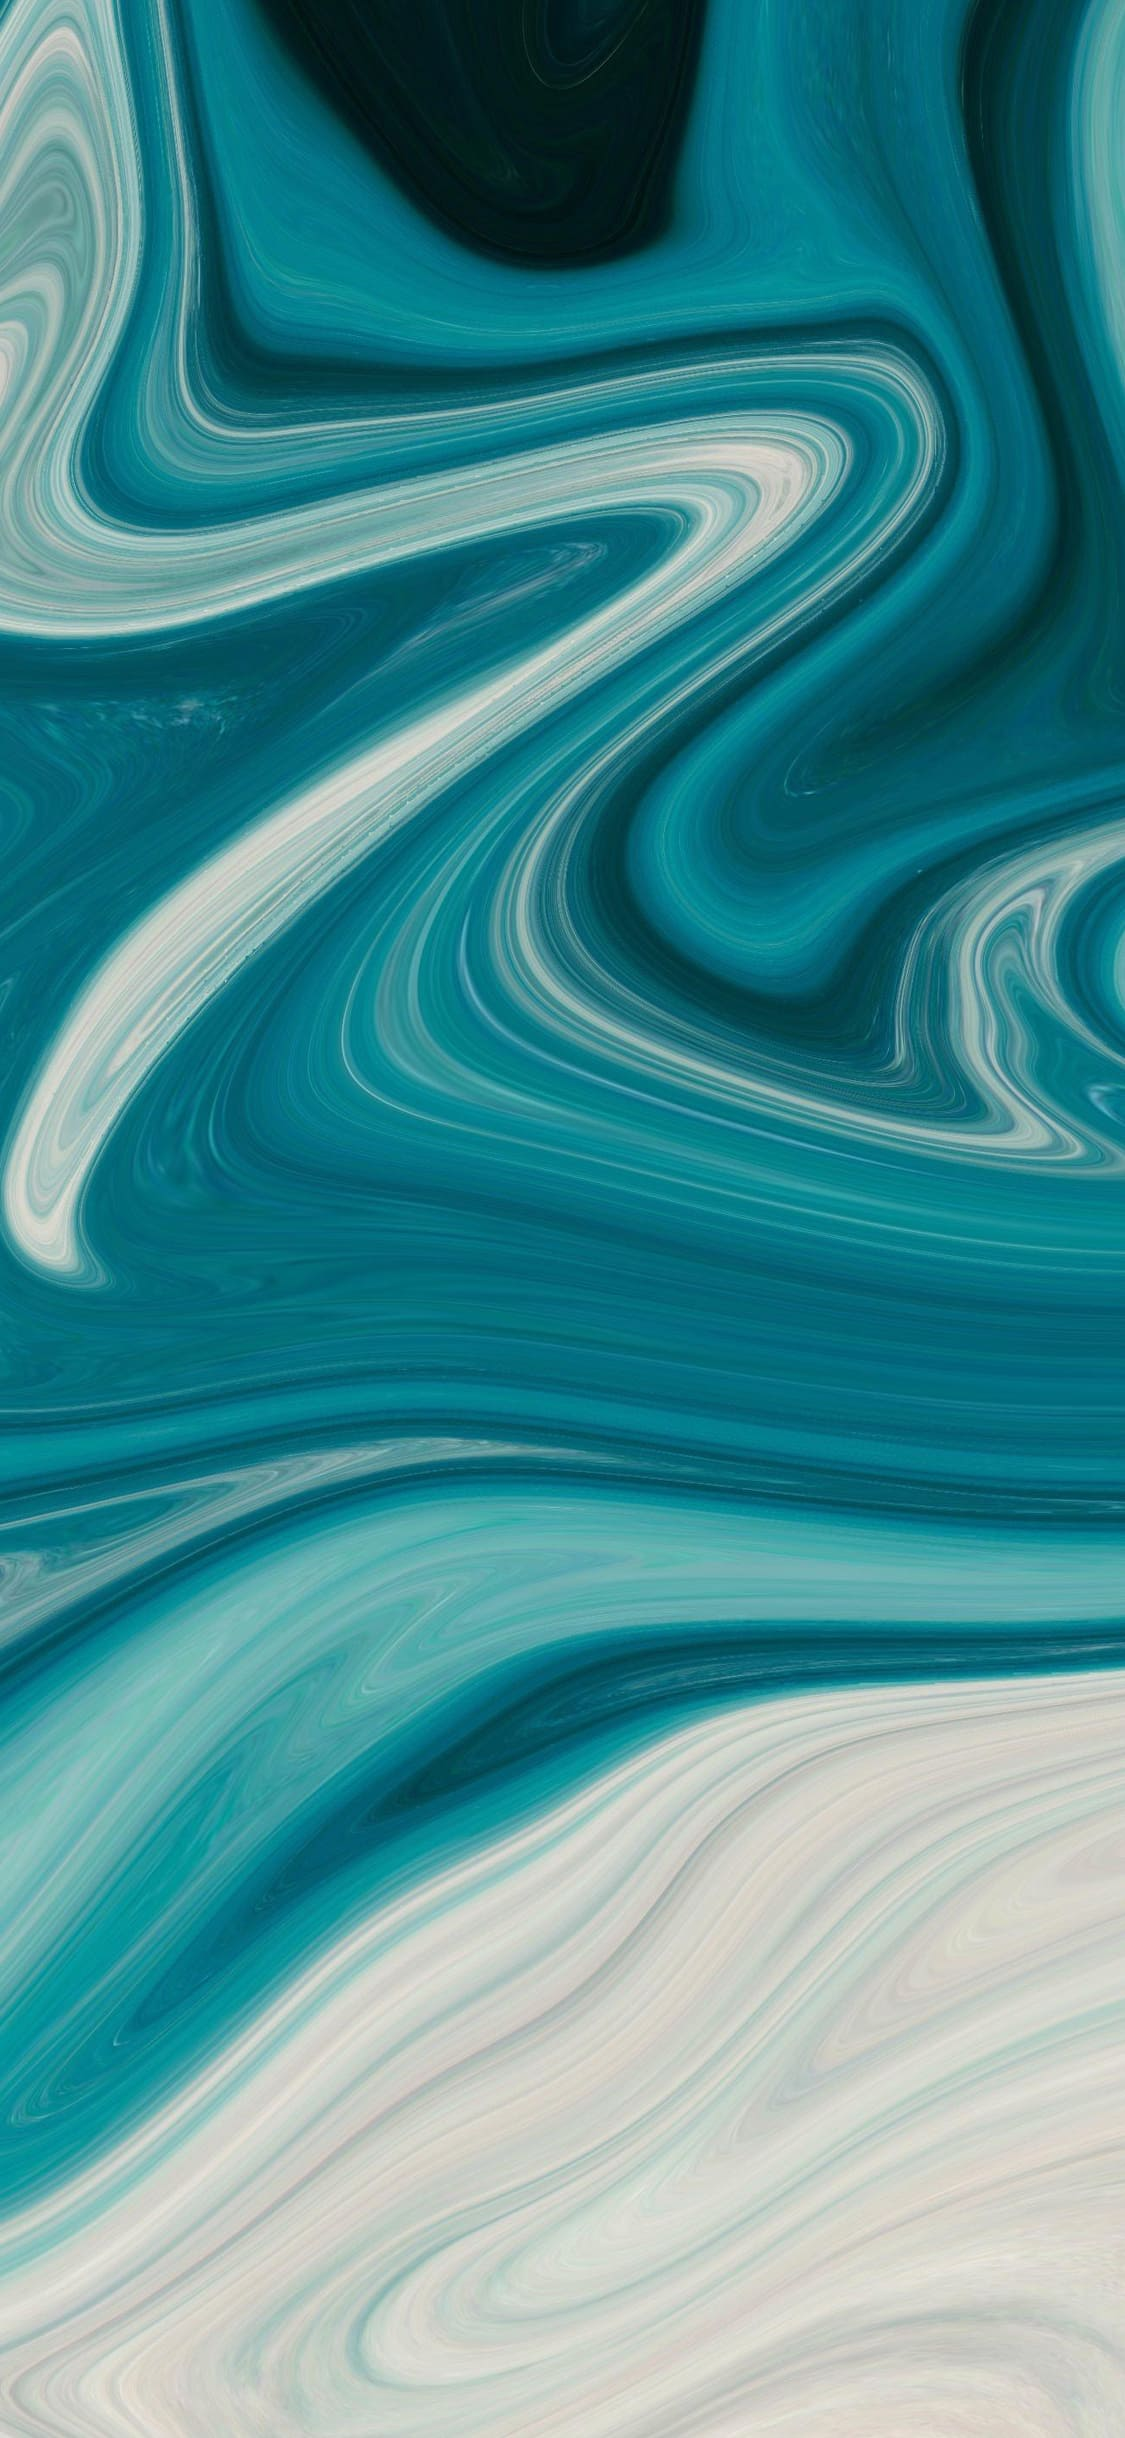 Download iOS 12 Wallpapers (8 Wallpapers) | DroidViews